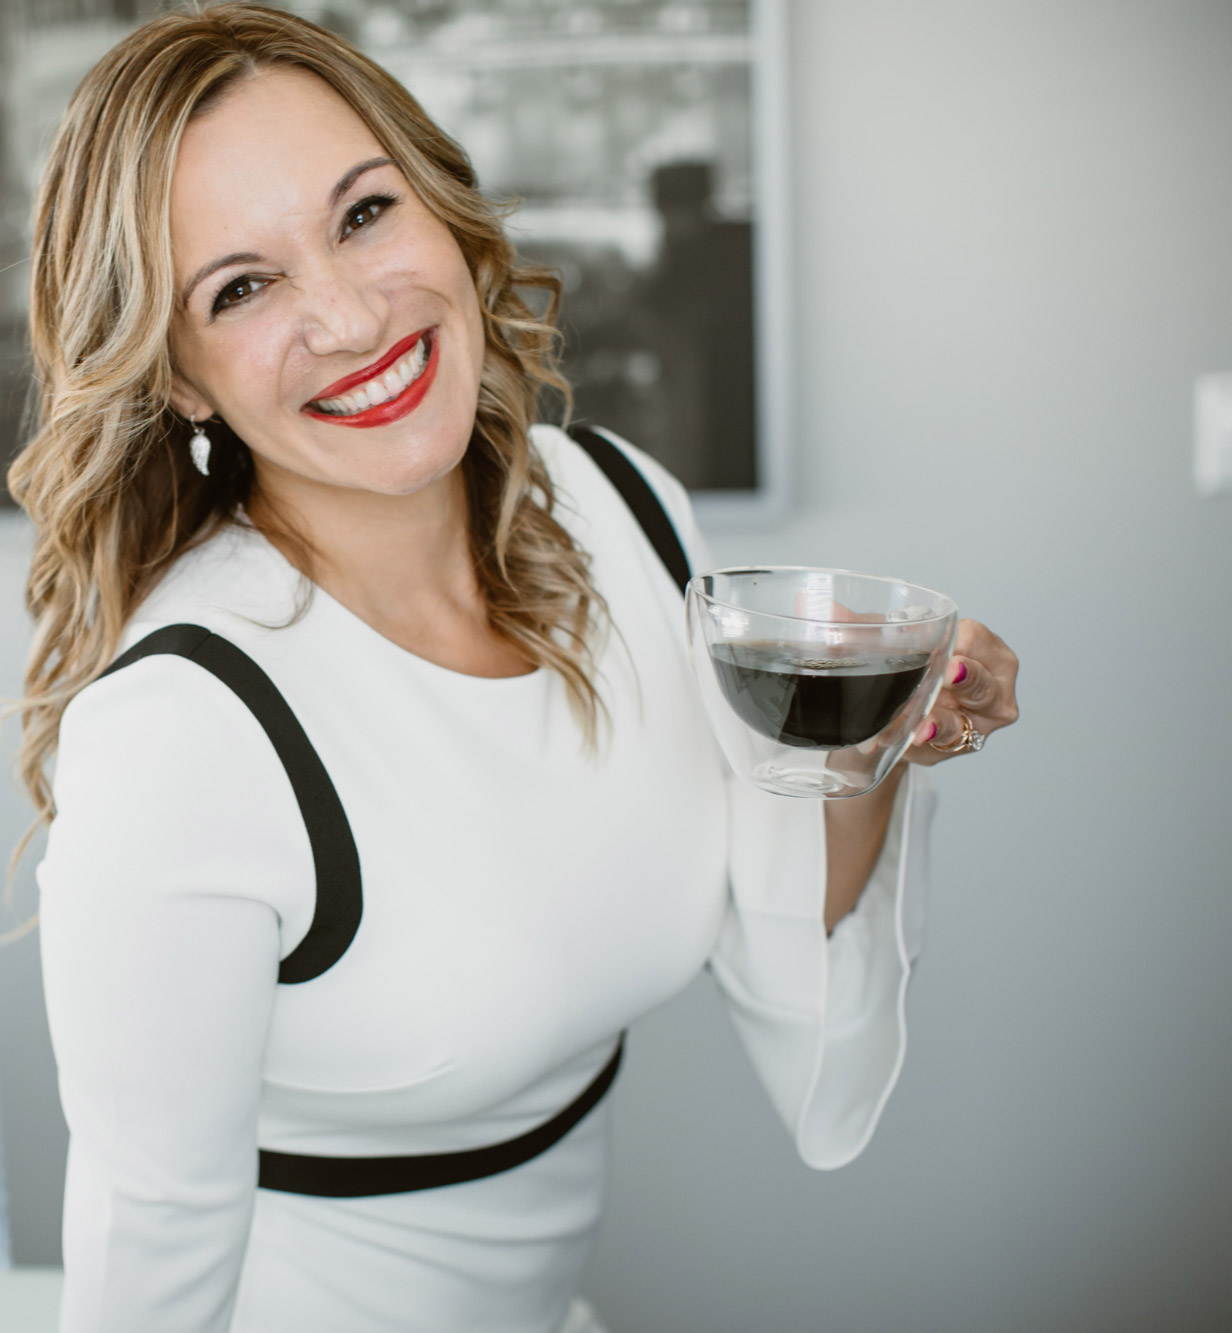 Photo of Dr. Paola smiling with a cup of coffee